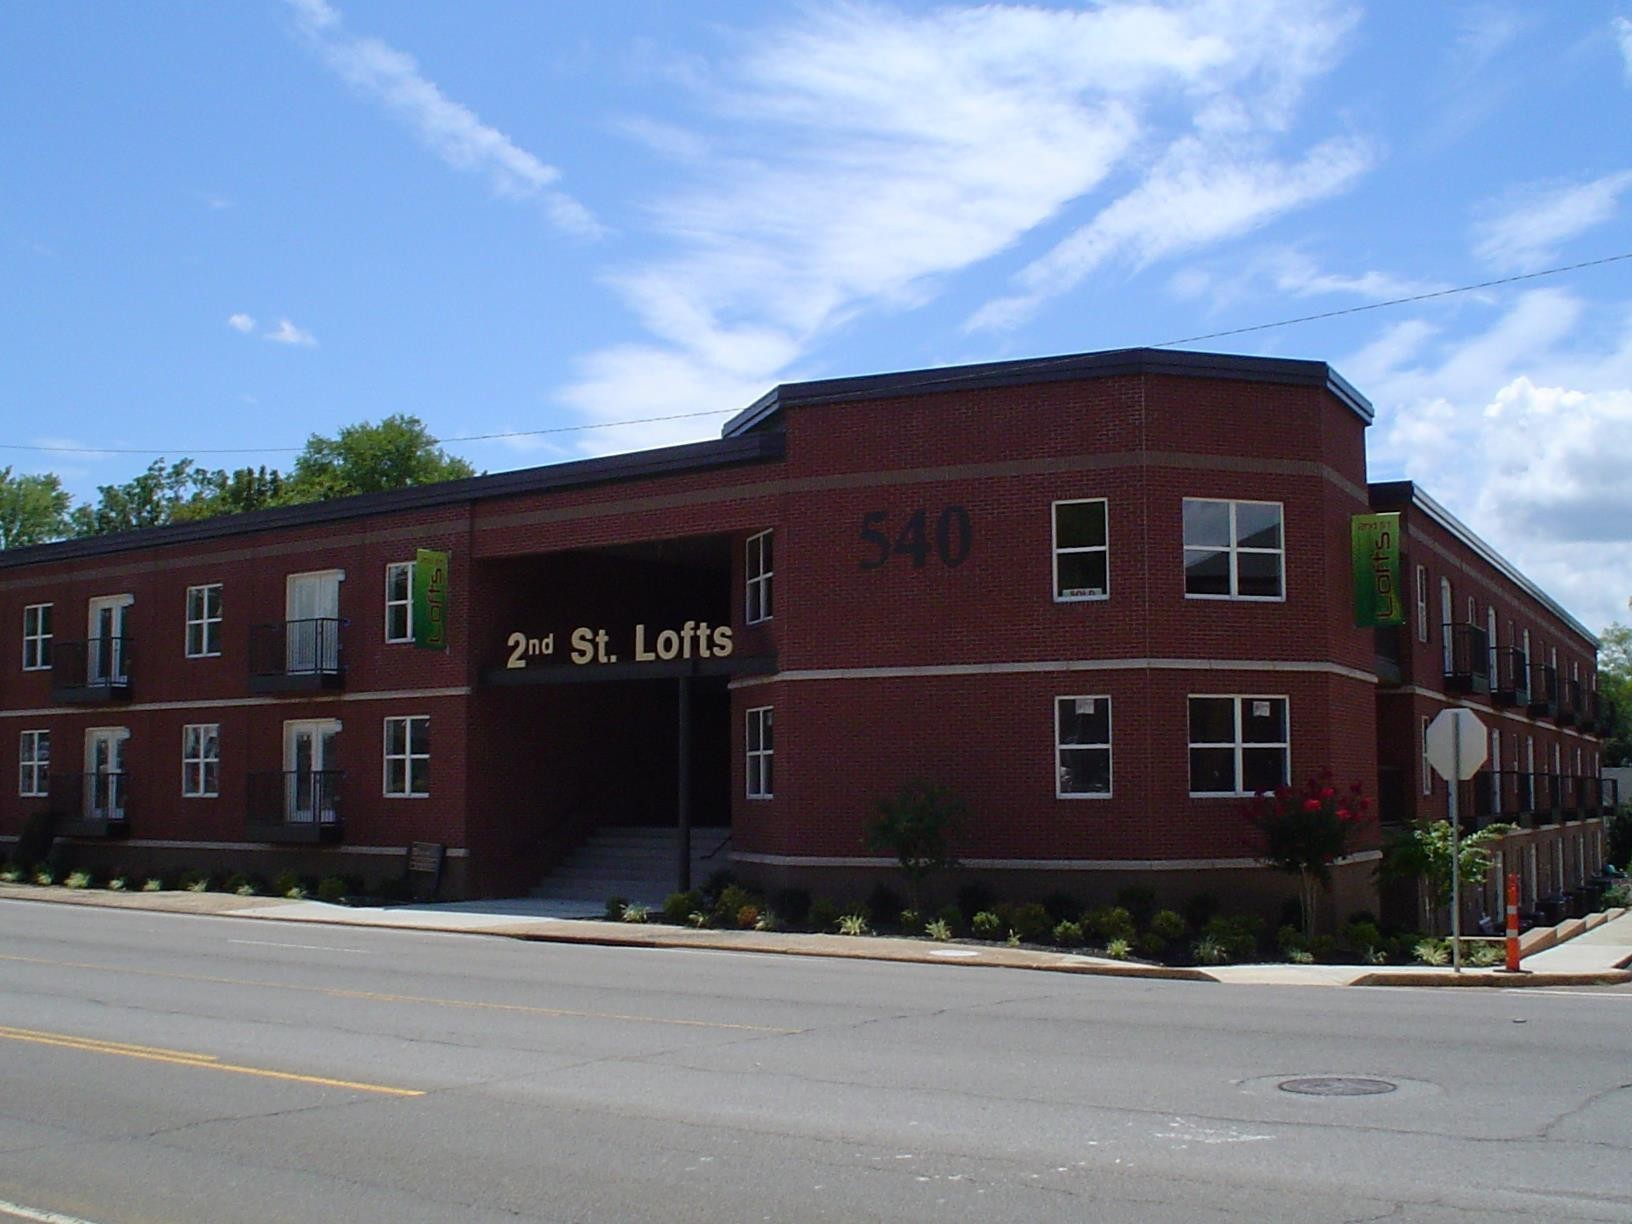 540 N. 2nd St. Lofts #302 Property Photo - Clarksville, TN real estate listing